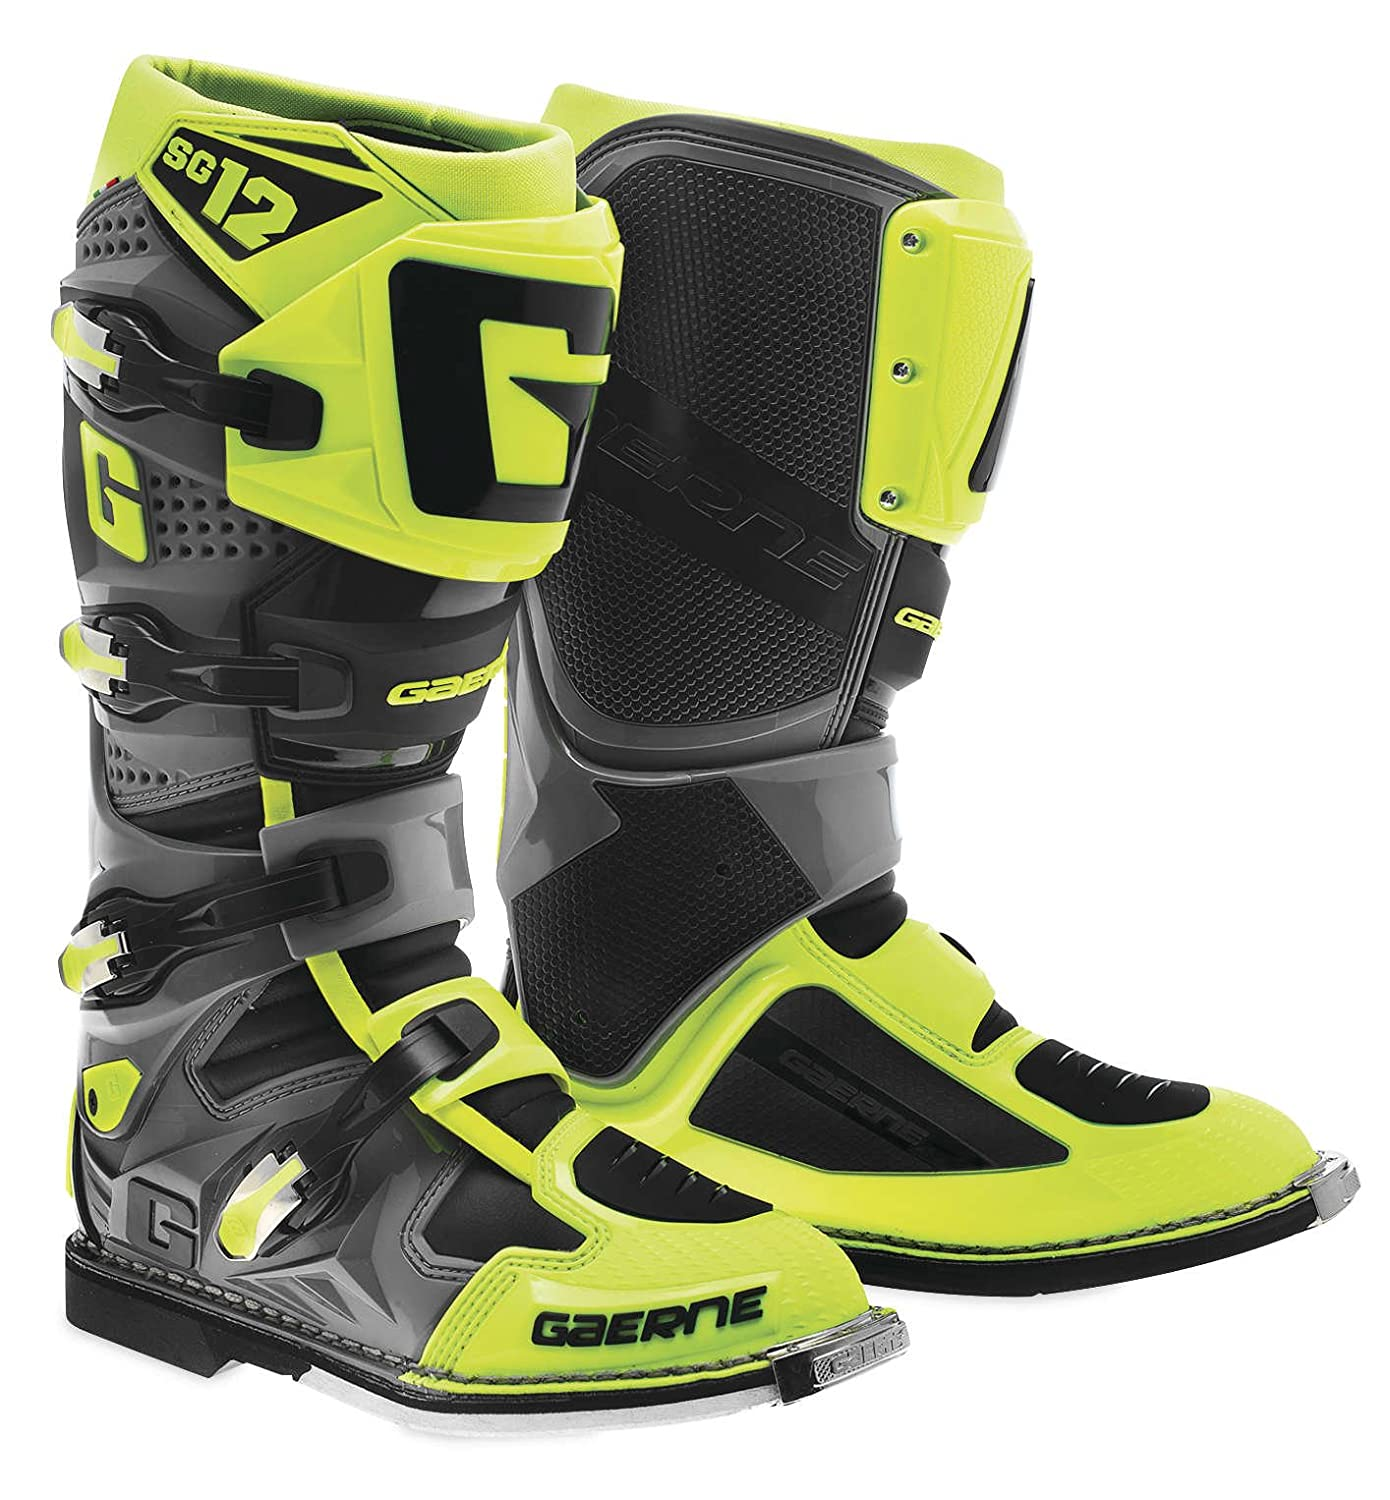 Gaerne 7Sg12 Boot Neon Yel Blk 7 2174-049-07 New